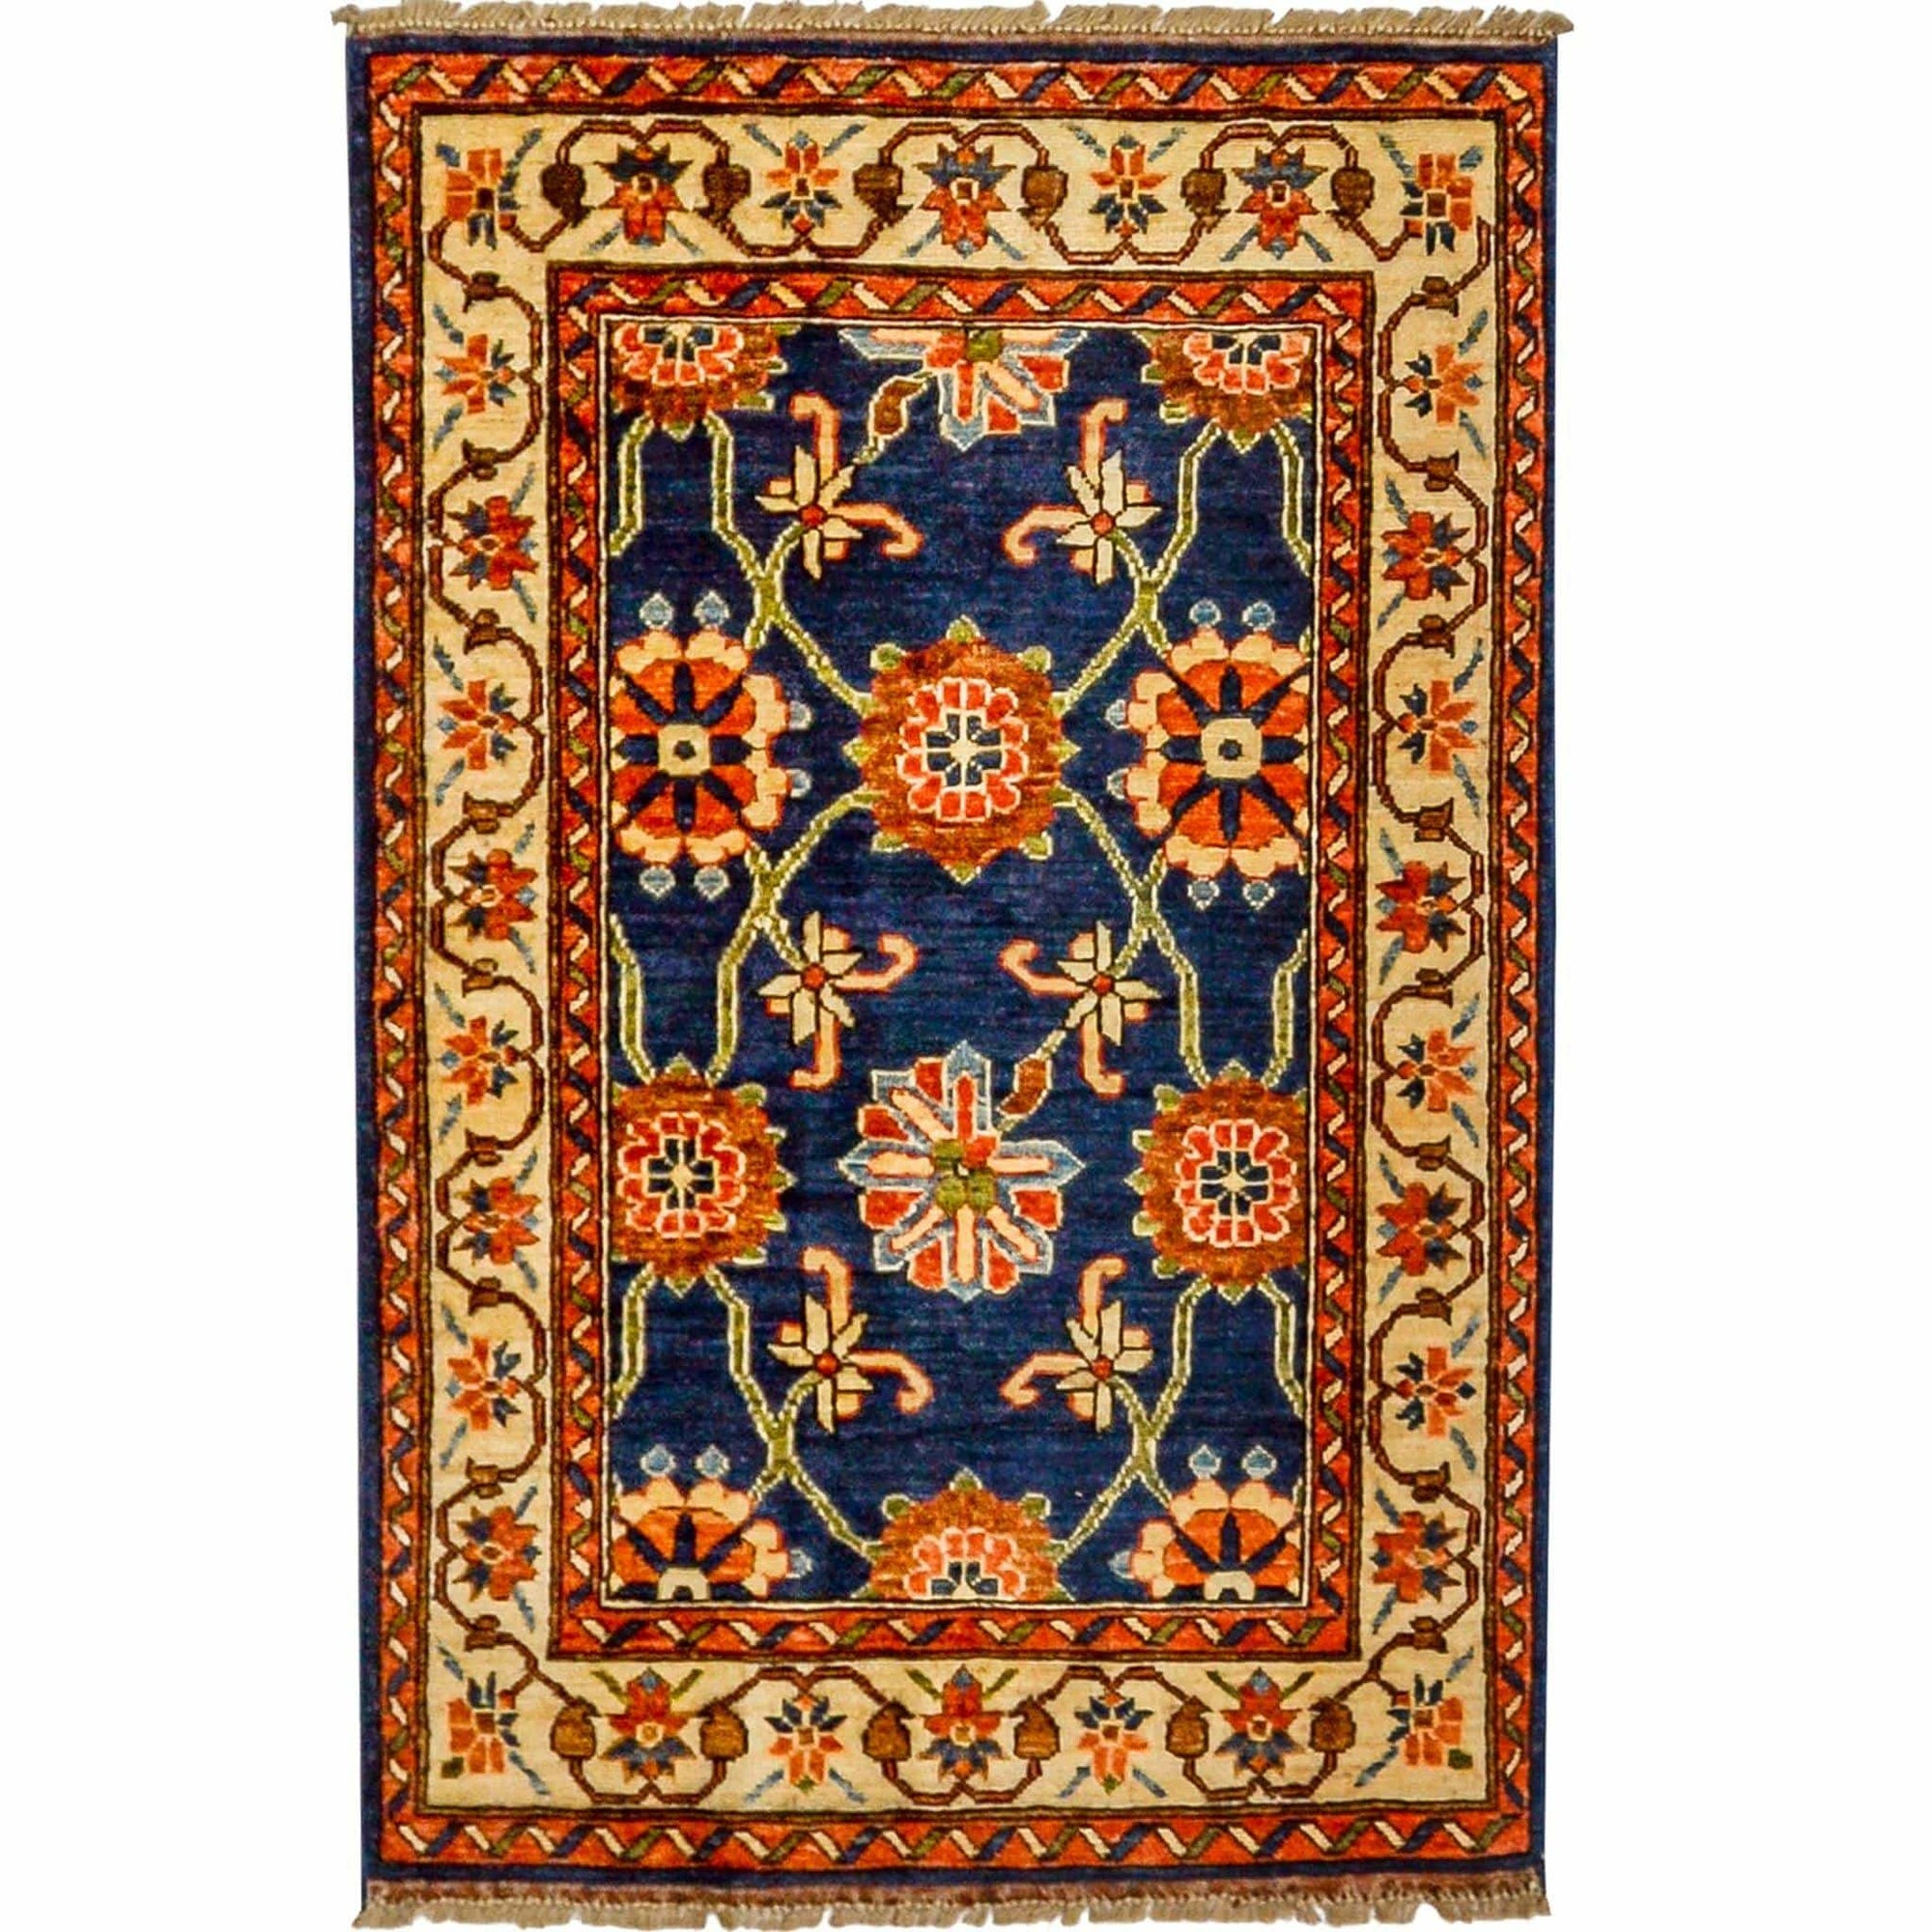 Fine Hand-knotted Wool Tribal Small Rug 83cm x 125cm Persian-Rug | House-of-Haghi | NewMarket | Auckland | NZ | Handmade Persian Rugs | Hand Knotted Persian Rugs